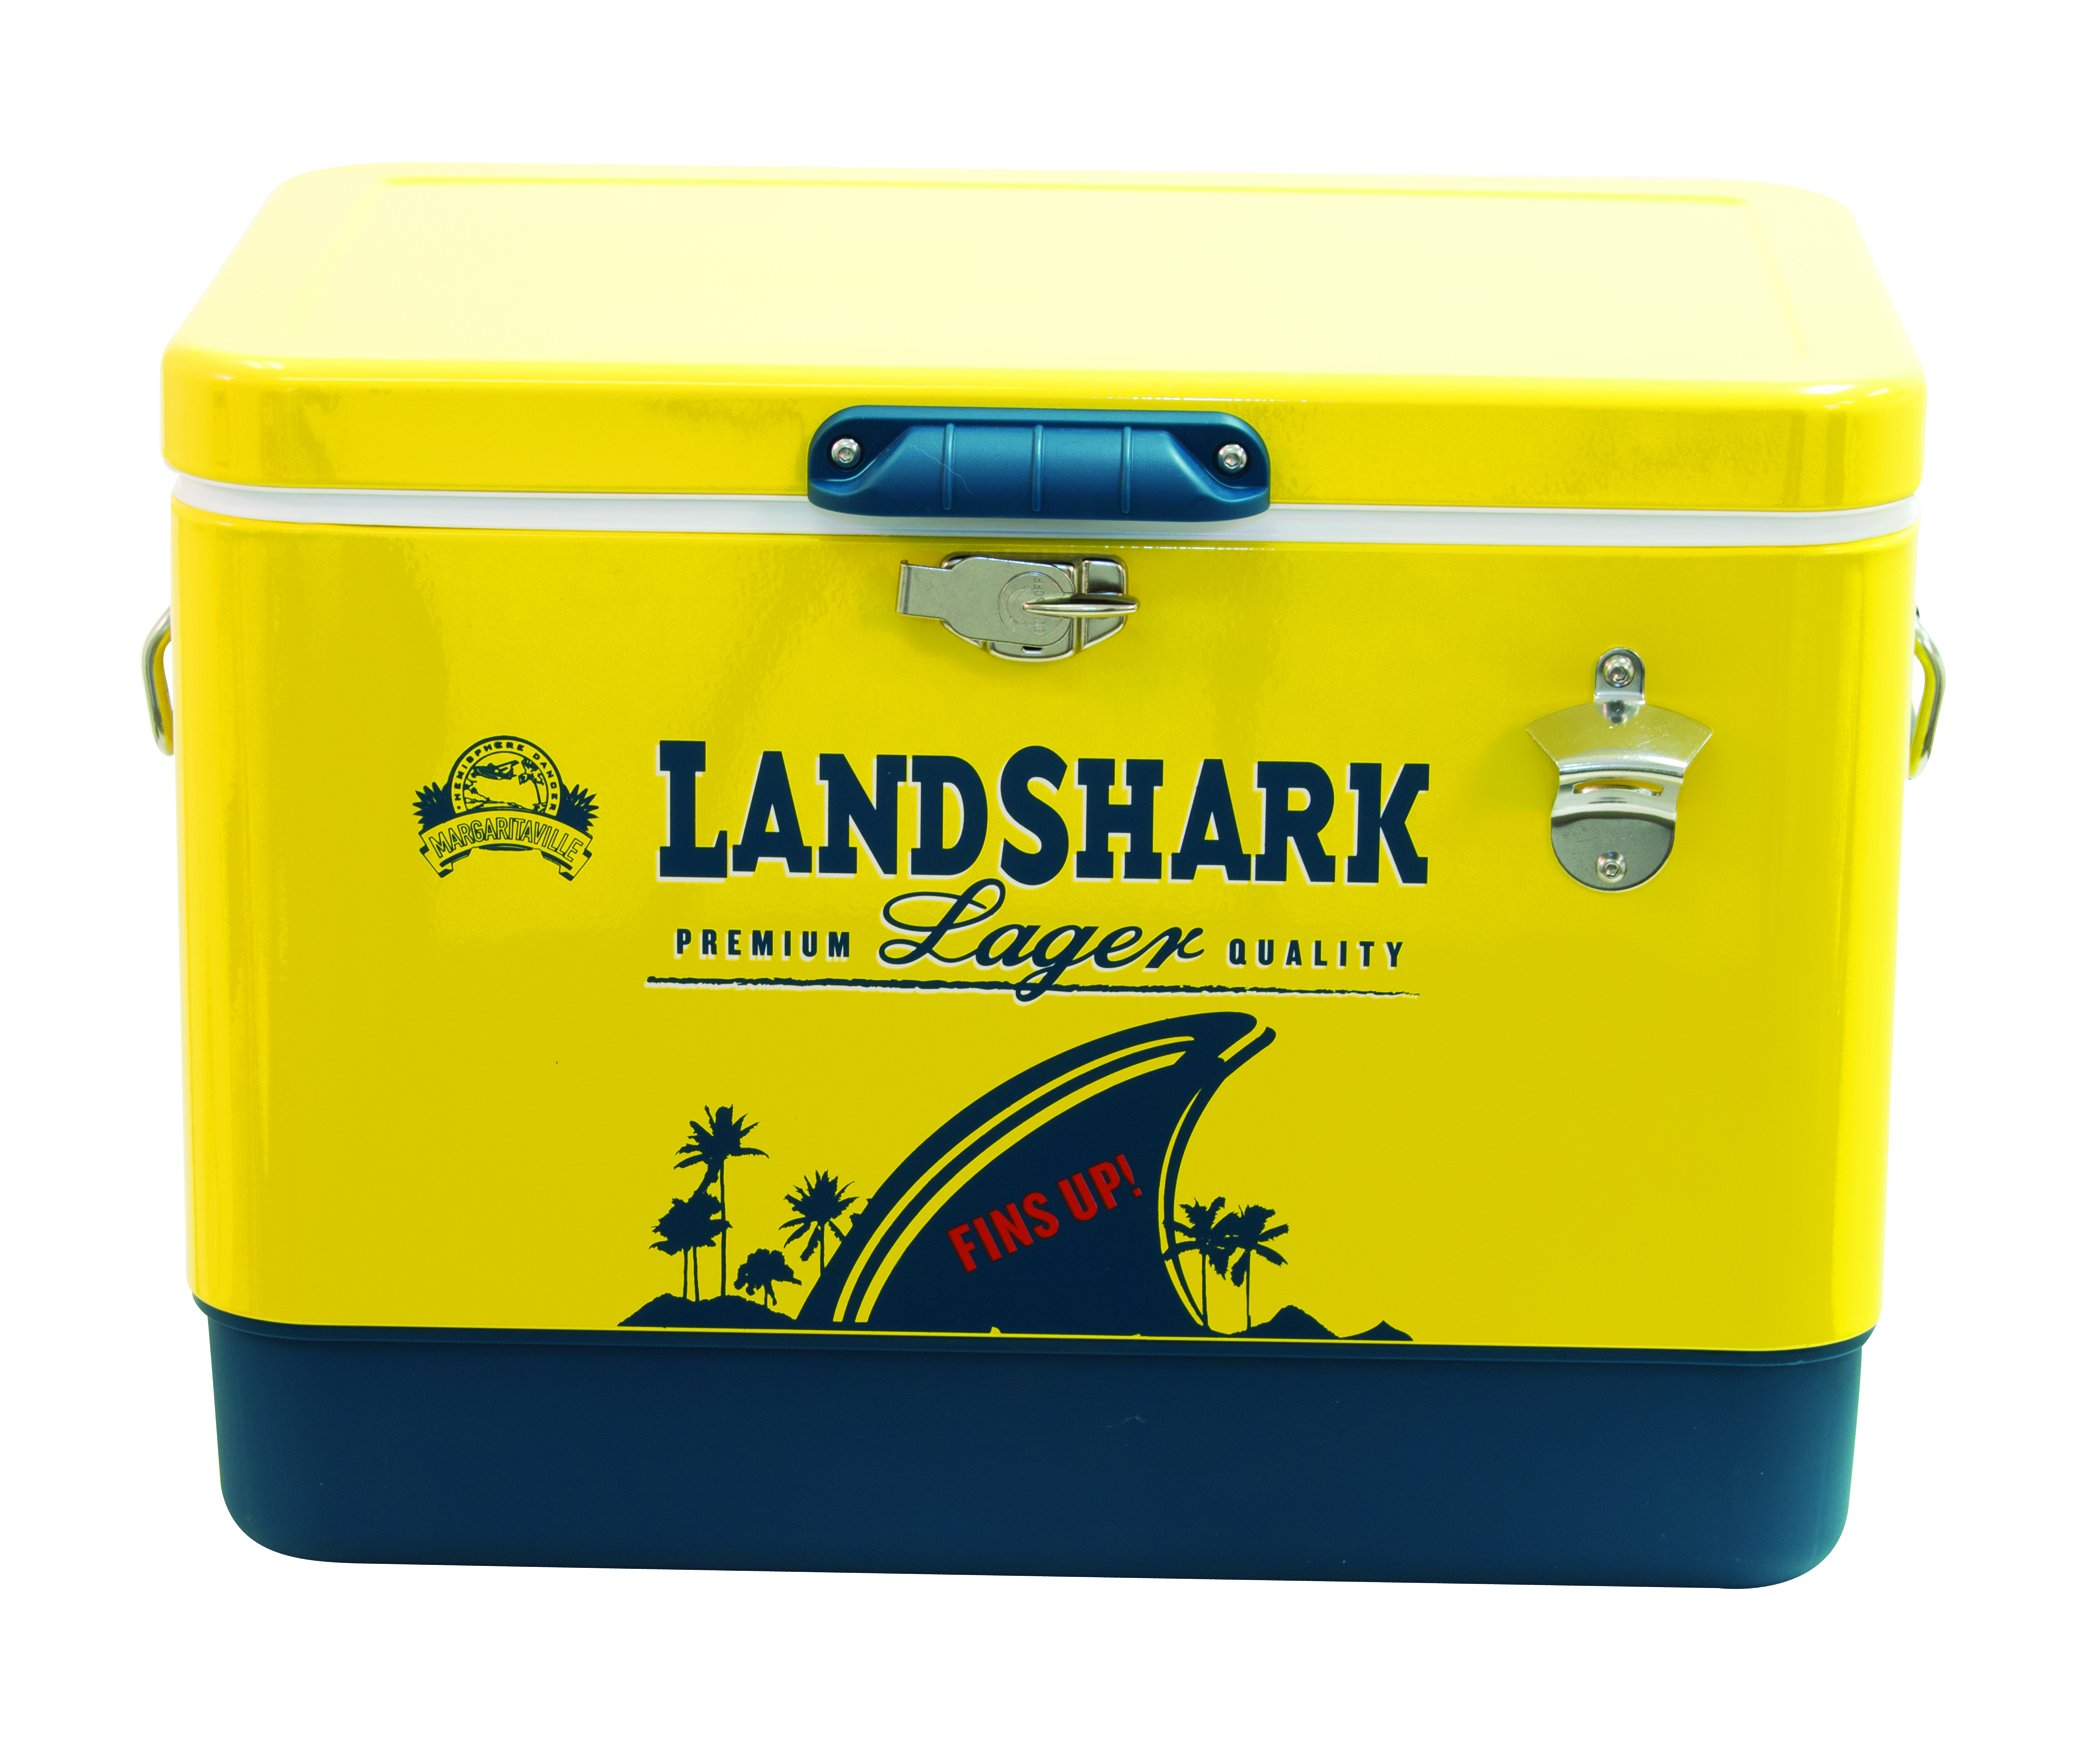 Margaritaville Outdoor ATC54MV-12 Margaritaville Landshark 54 Quart Steel Portable Bottle Opener Cooler, Yellow by Margaritaville Outdoor